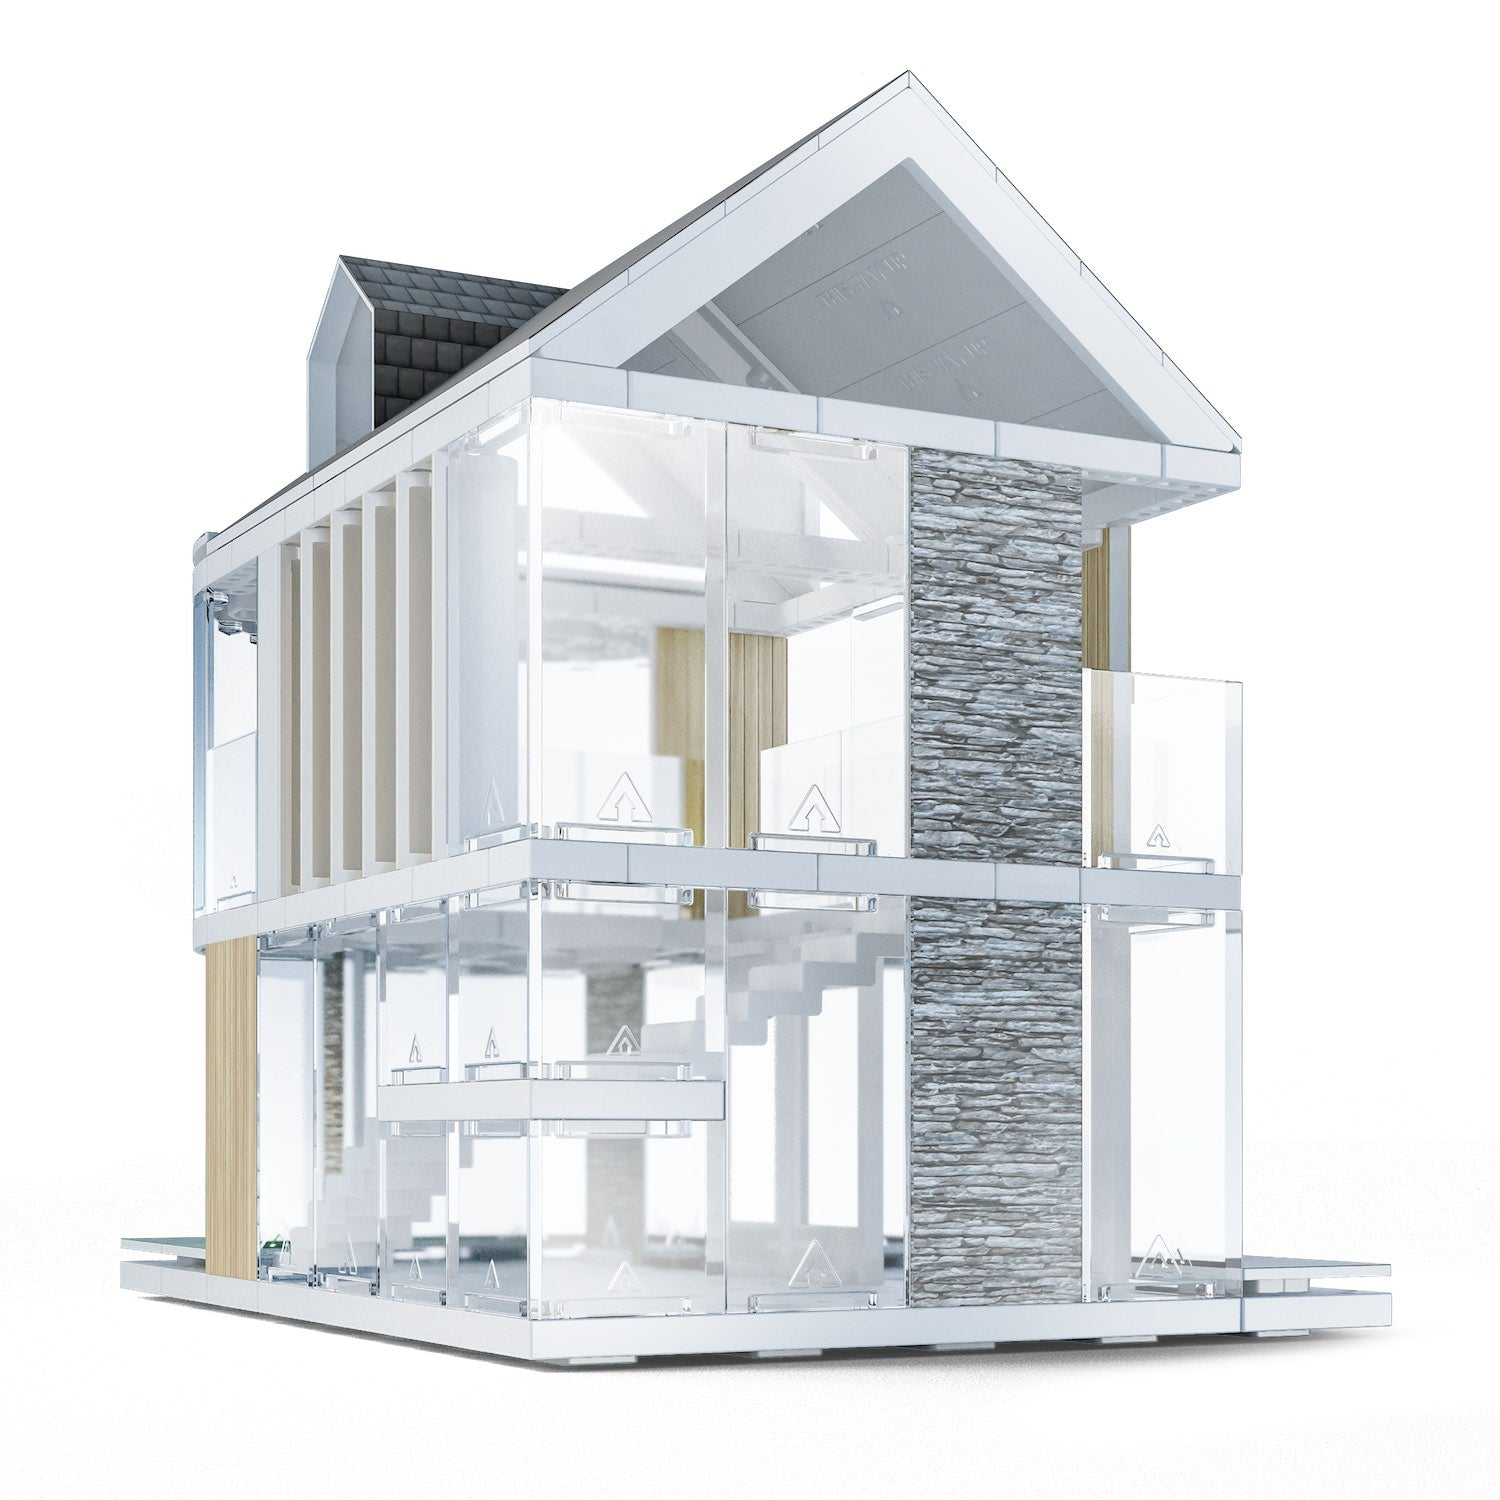 The Award Winning Architecture Firm Building Quick Modular Homes: Architectural Model System